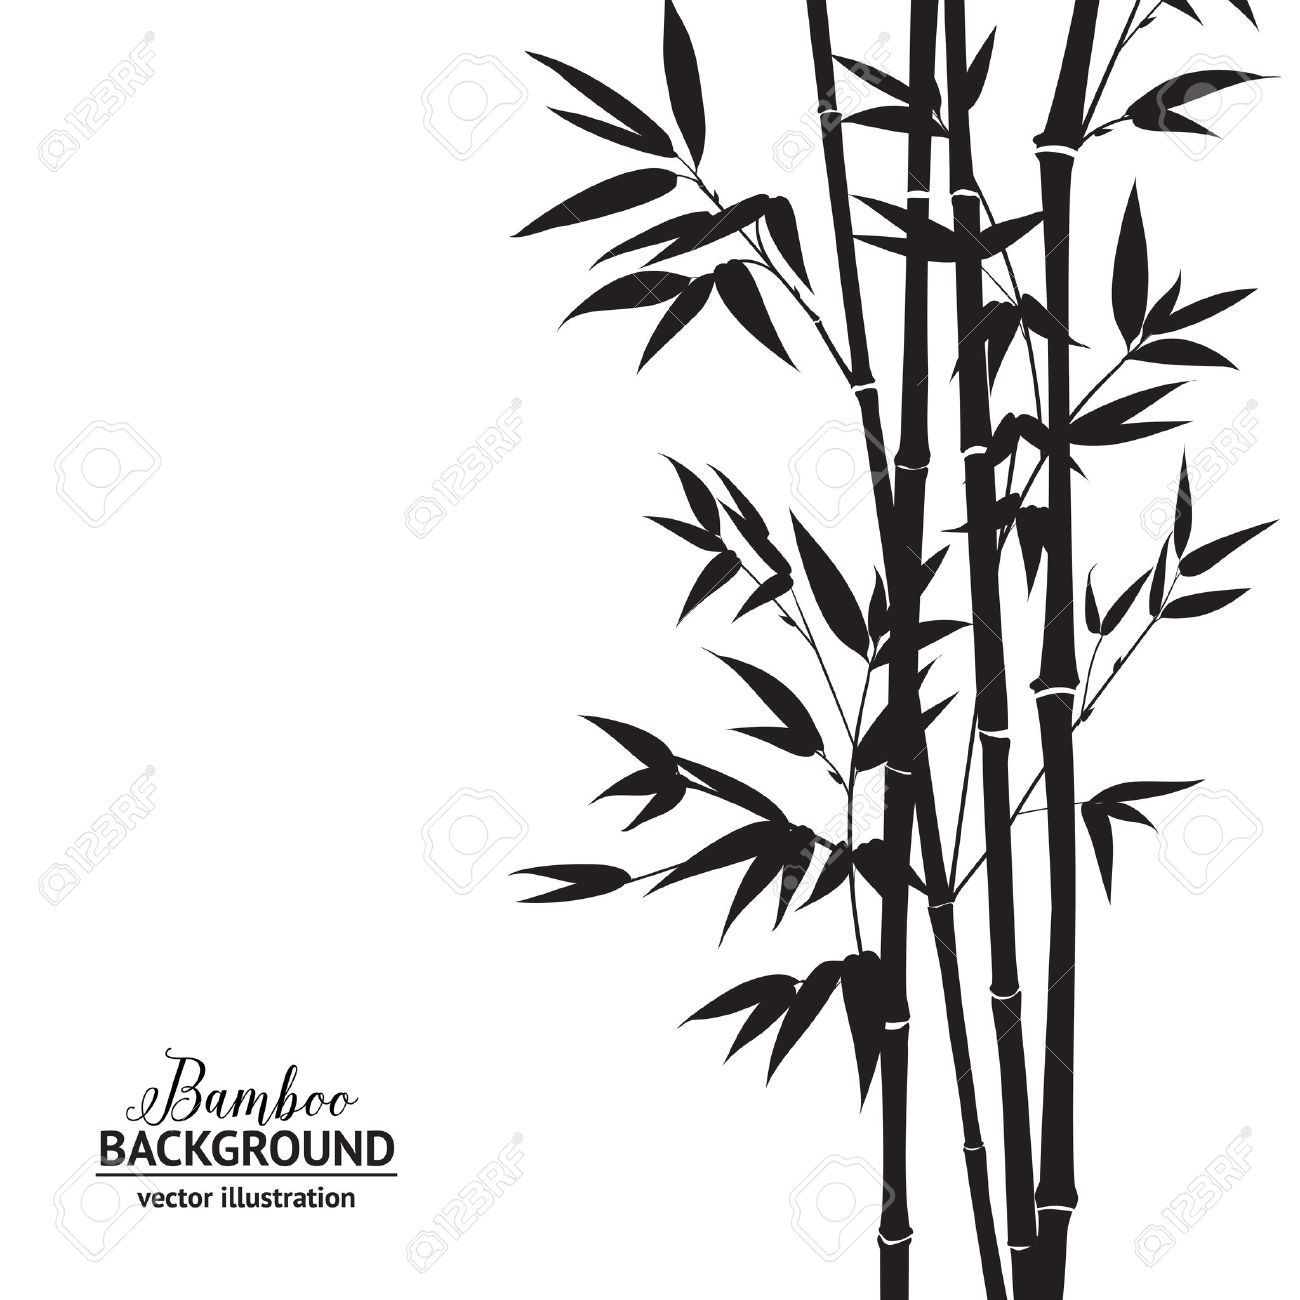 bamboo bush ink painting over white background vector illustration rh 123rf com bamboo vector graphics bamboo vector graphics